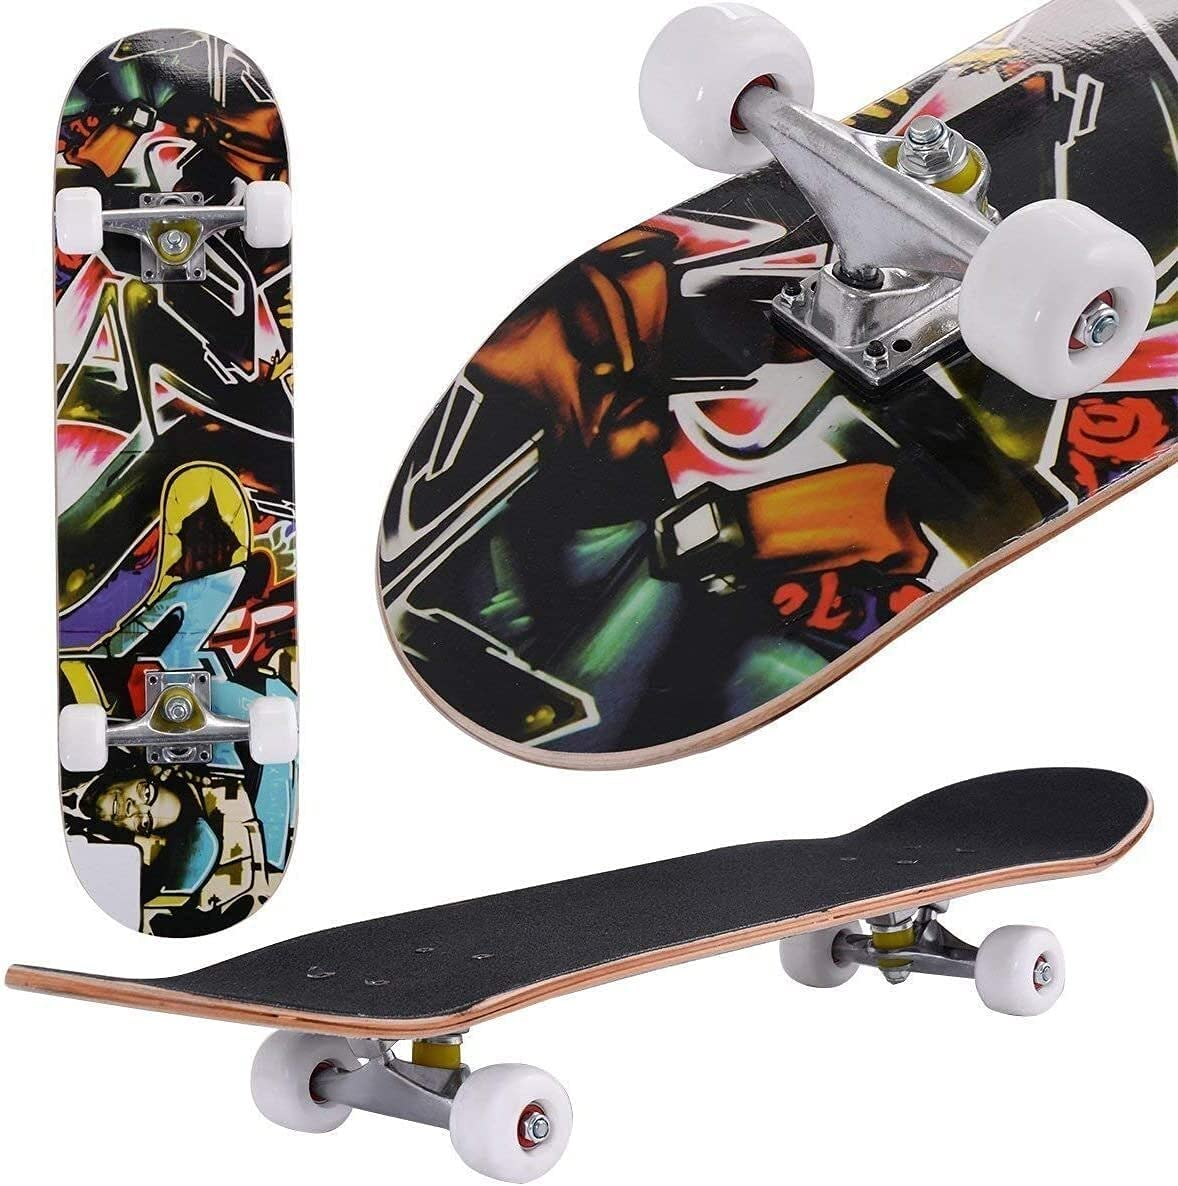 Qasole Skateboard Complete Board with ABEC-9 9- and Bearing OFFer Super-cheap Ball